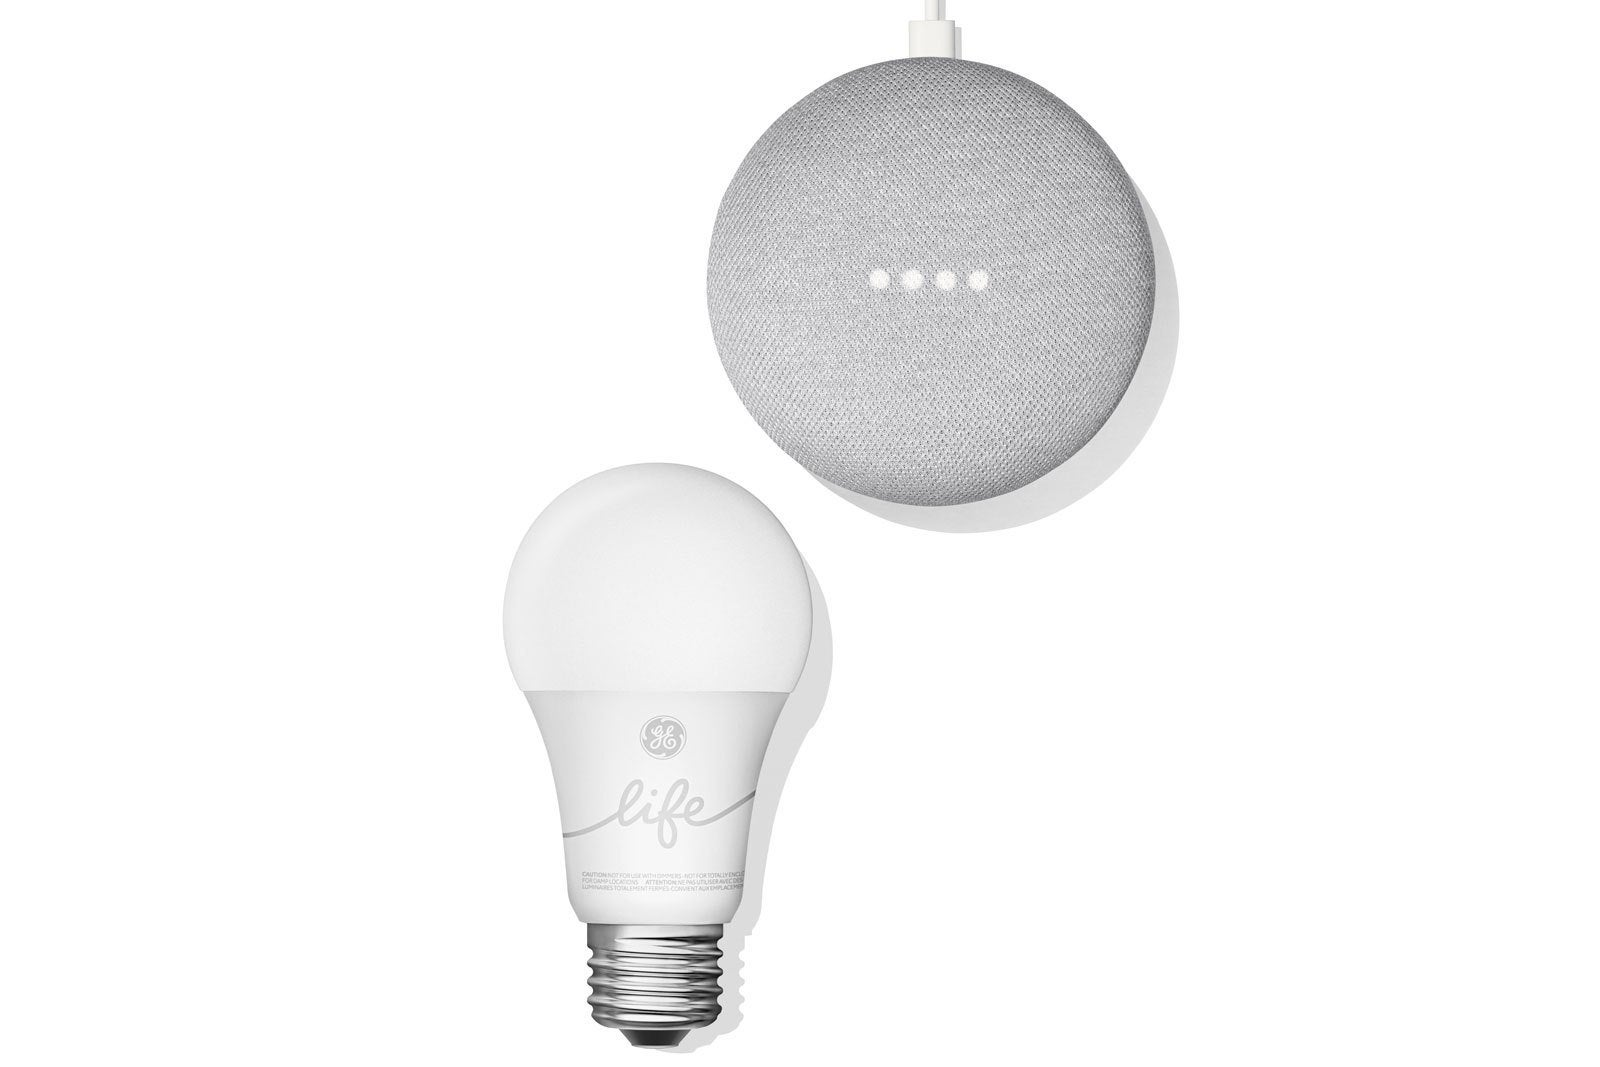 Ge Lightings New C By Smart Lighting Starter Kit Features The Fluorescent Lamp Lights Google Home Mini Techhive